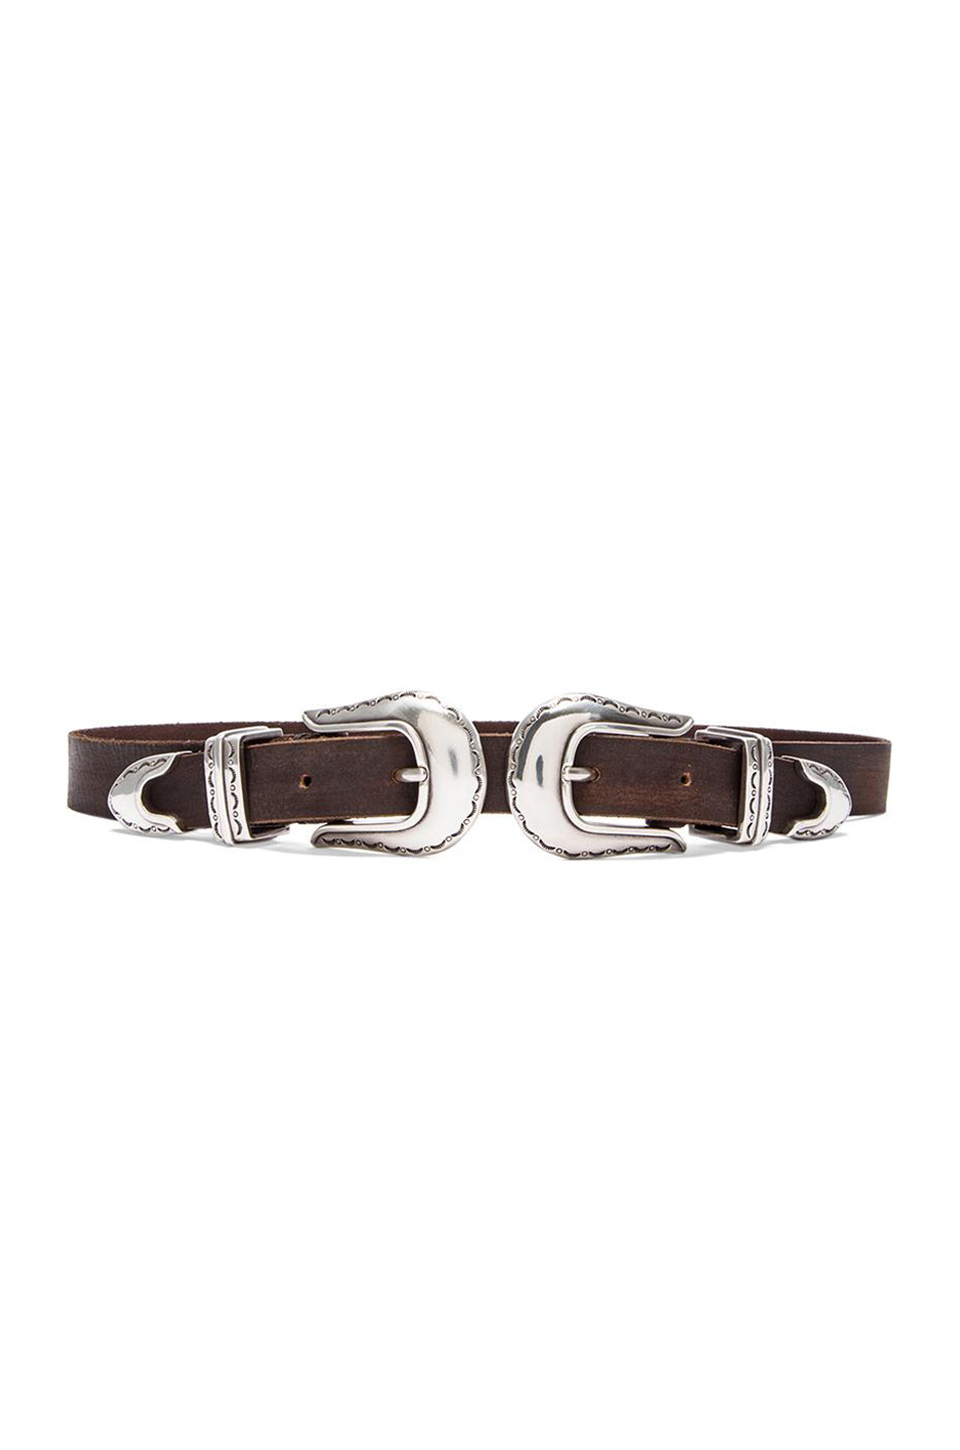 Stillwater The Double Buckle Belt in Black